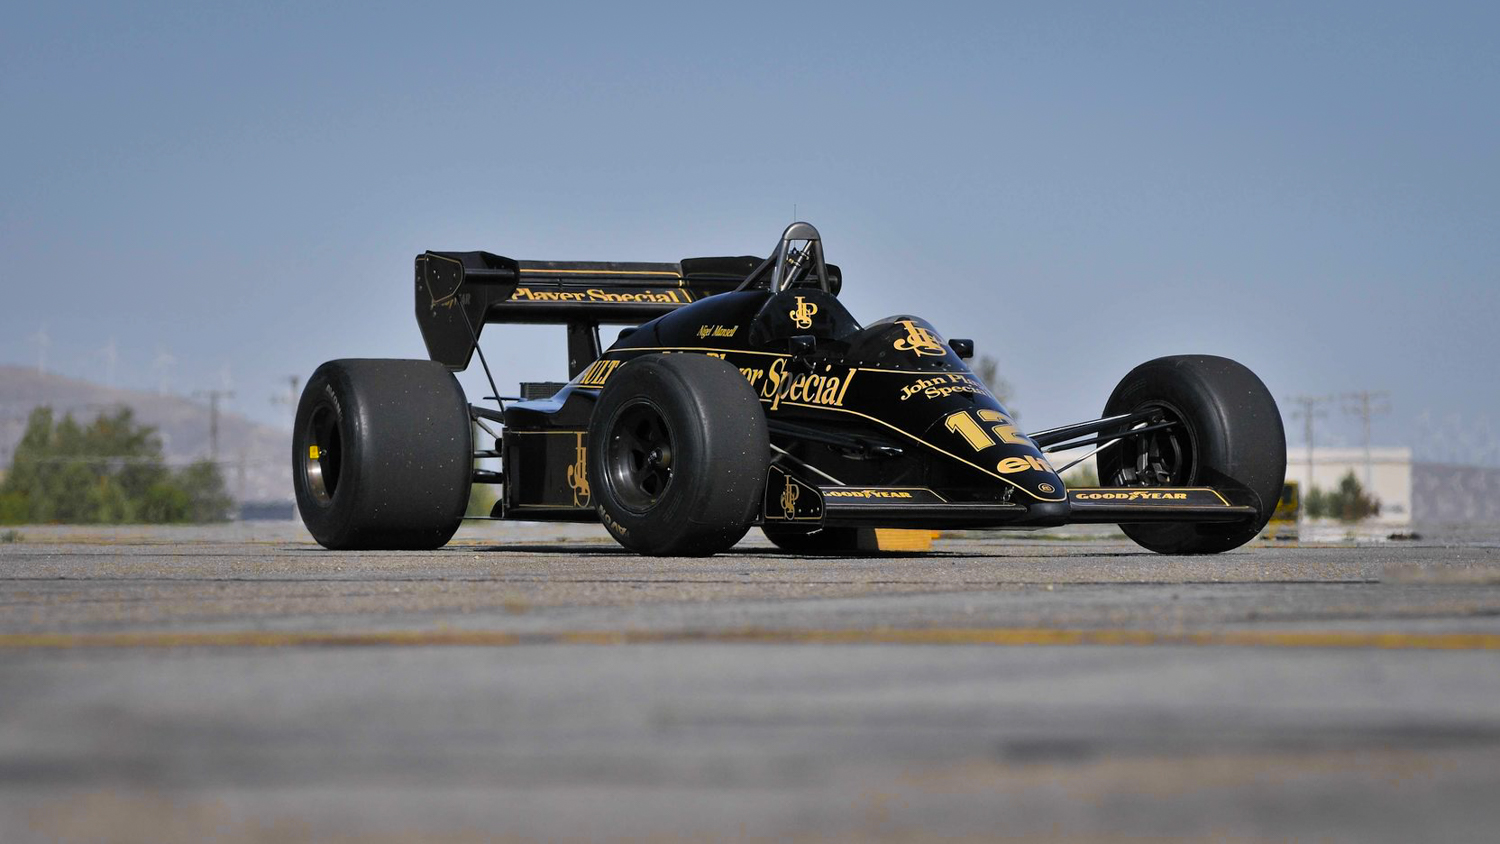 1984 Lotus Type 95T  front 3/4 John player special